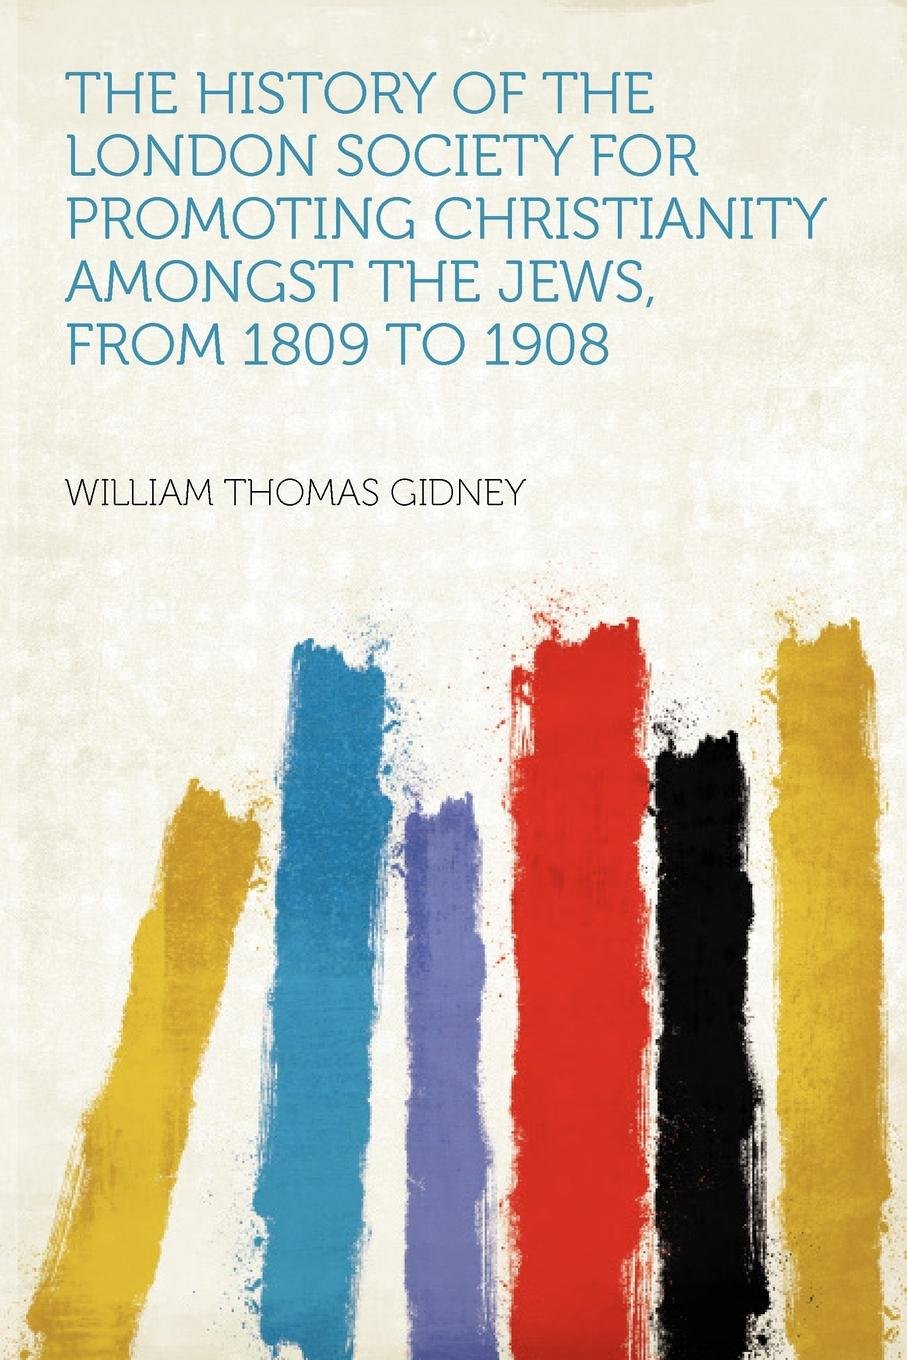 Read Online The History of the London Society for Promoting Christianity Amongst the Jews, From 1809 to 1908 PDF